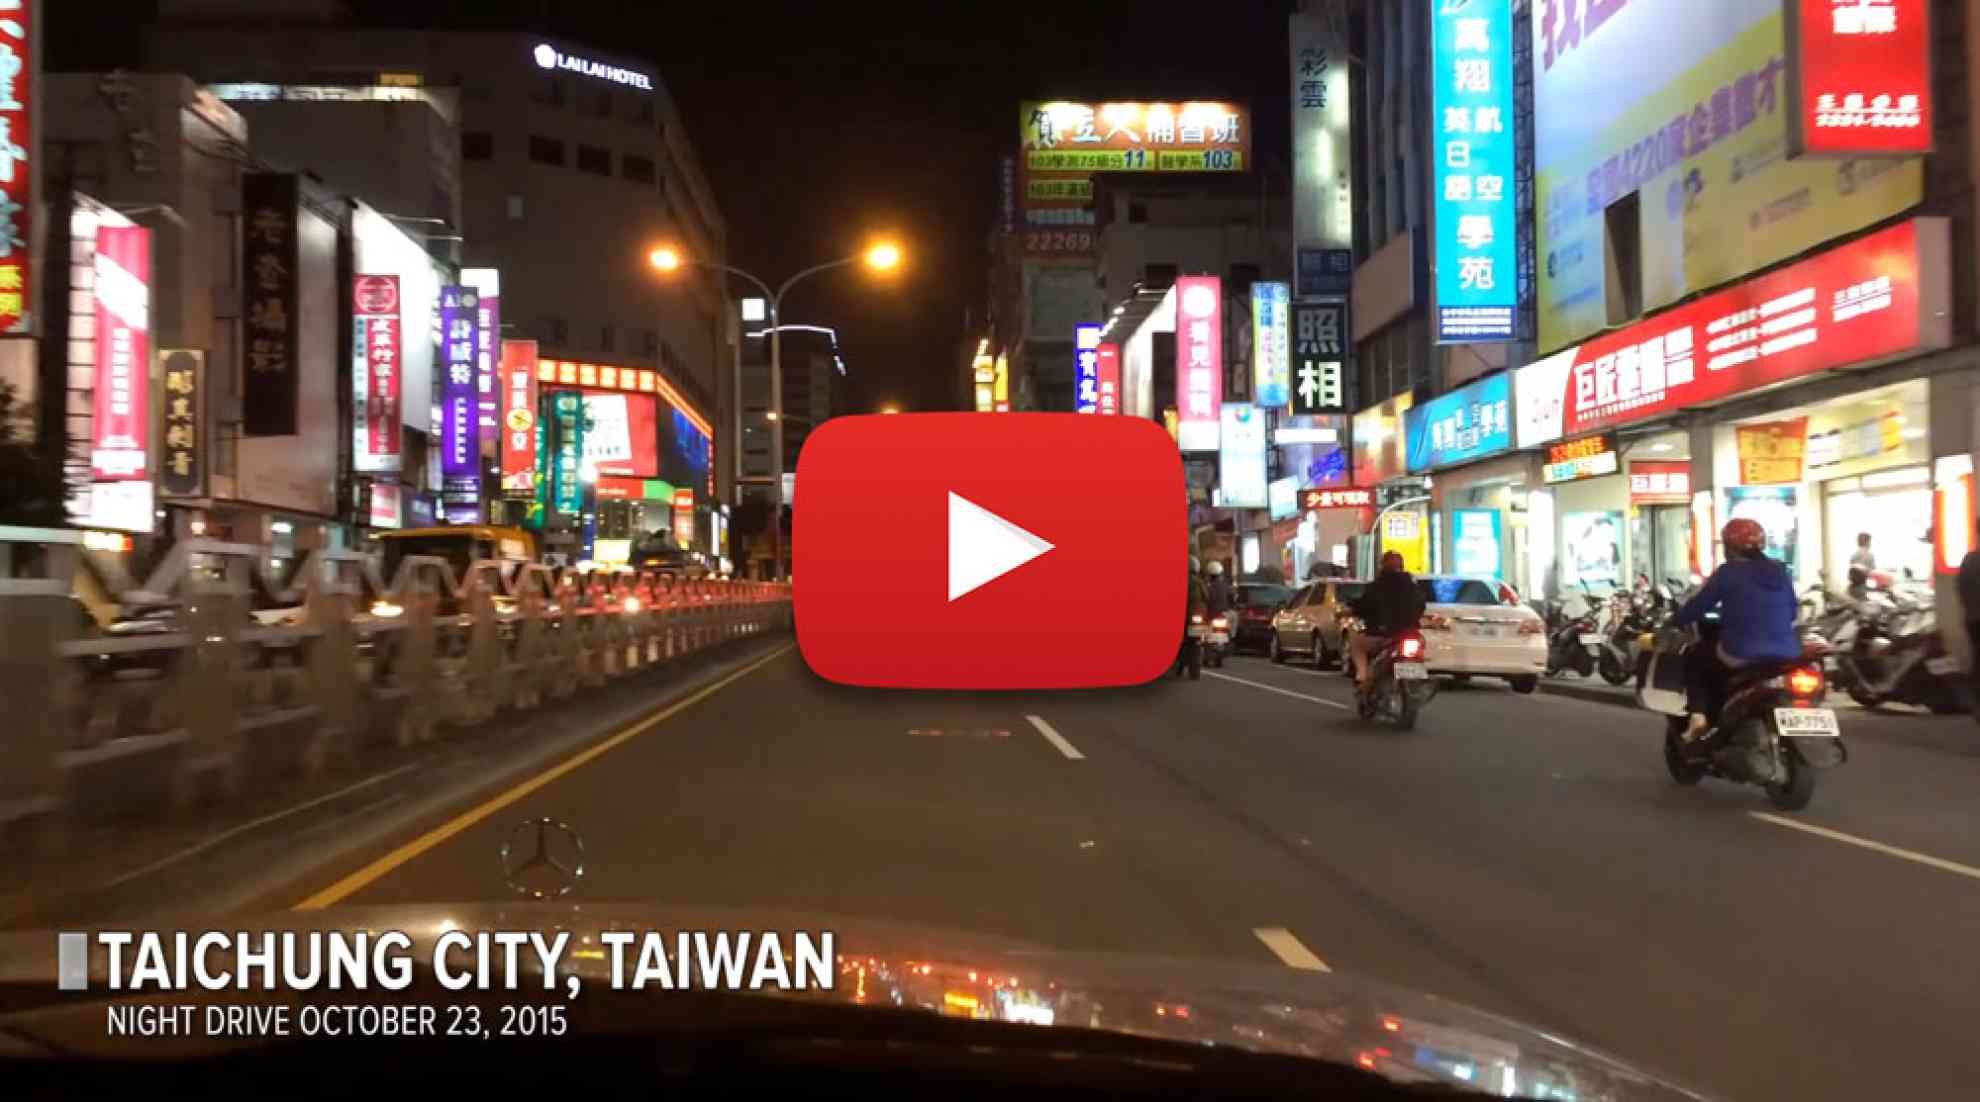 Taichung Night Drive